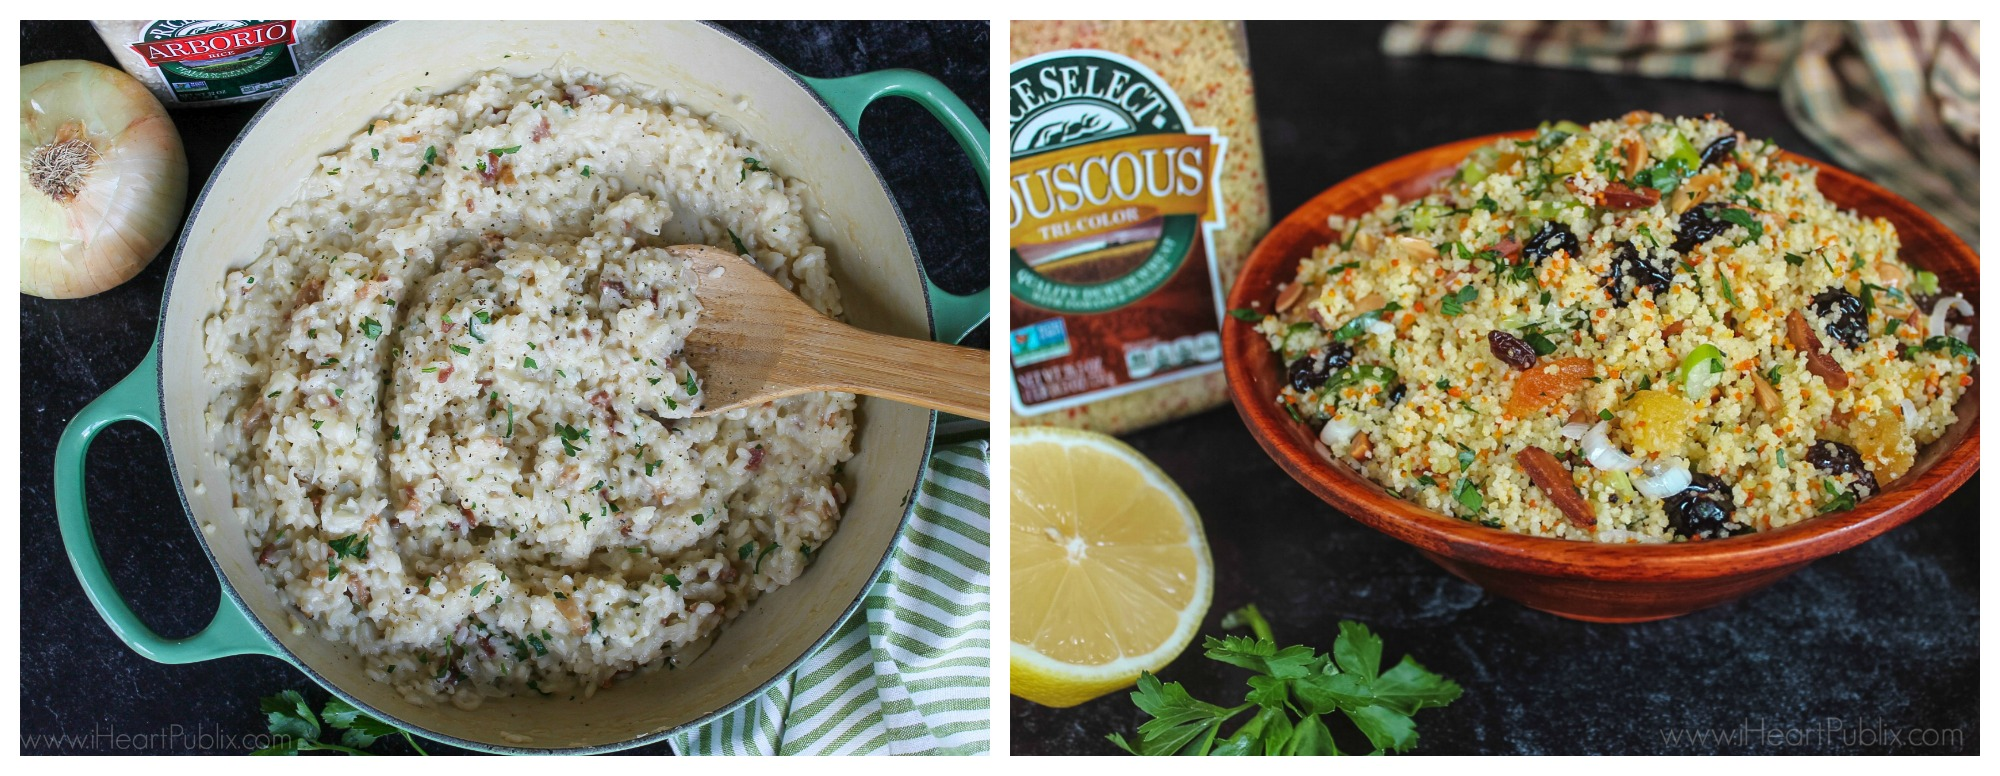 RiceSelect® Products - Save With Ibotta At Publix on I Heart Publix